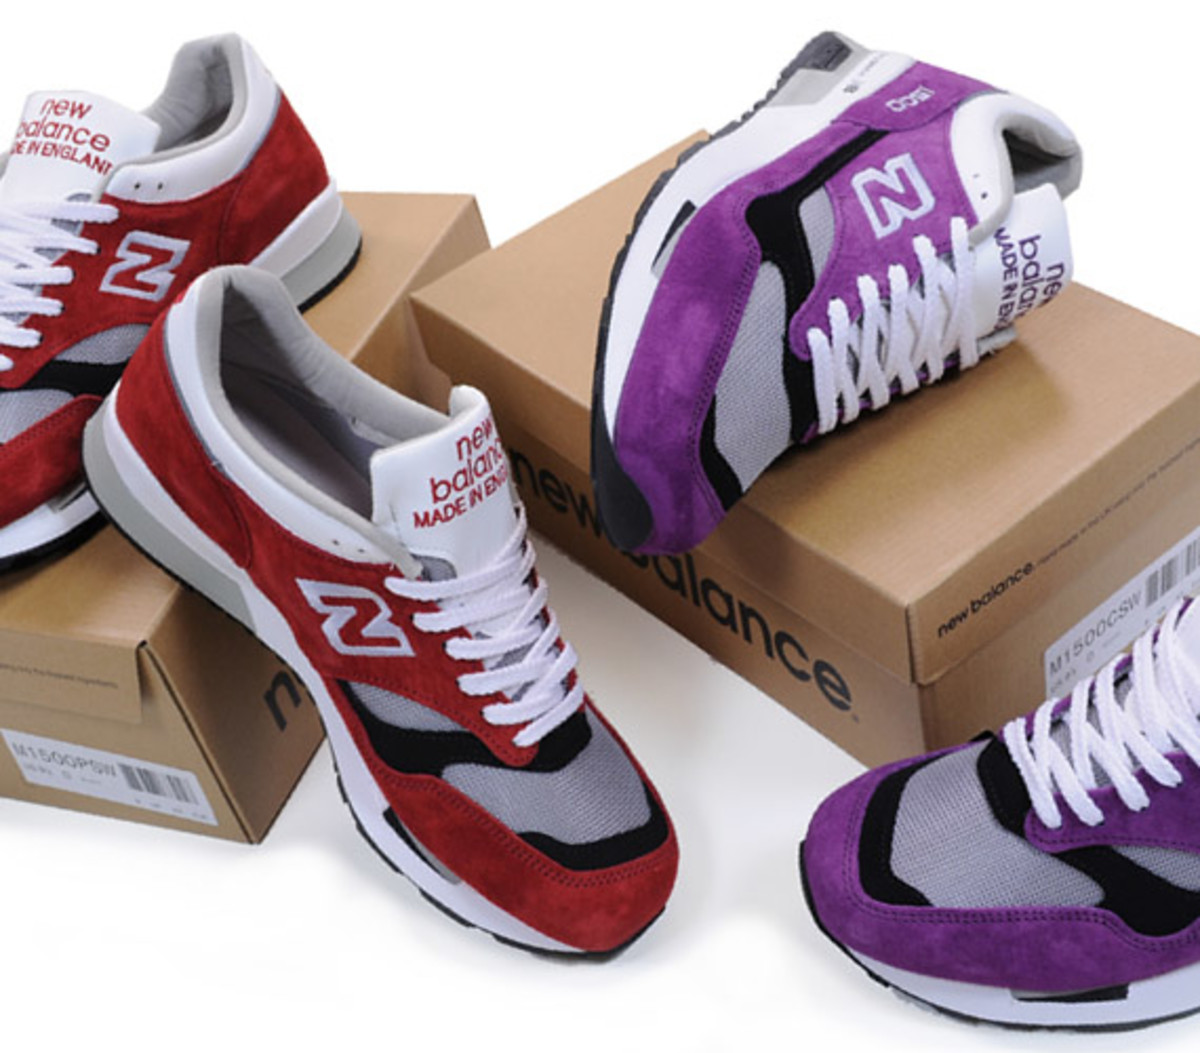 new balance 1500 red suede